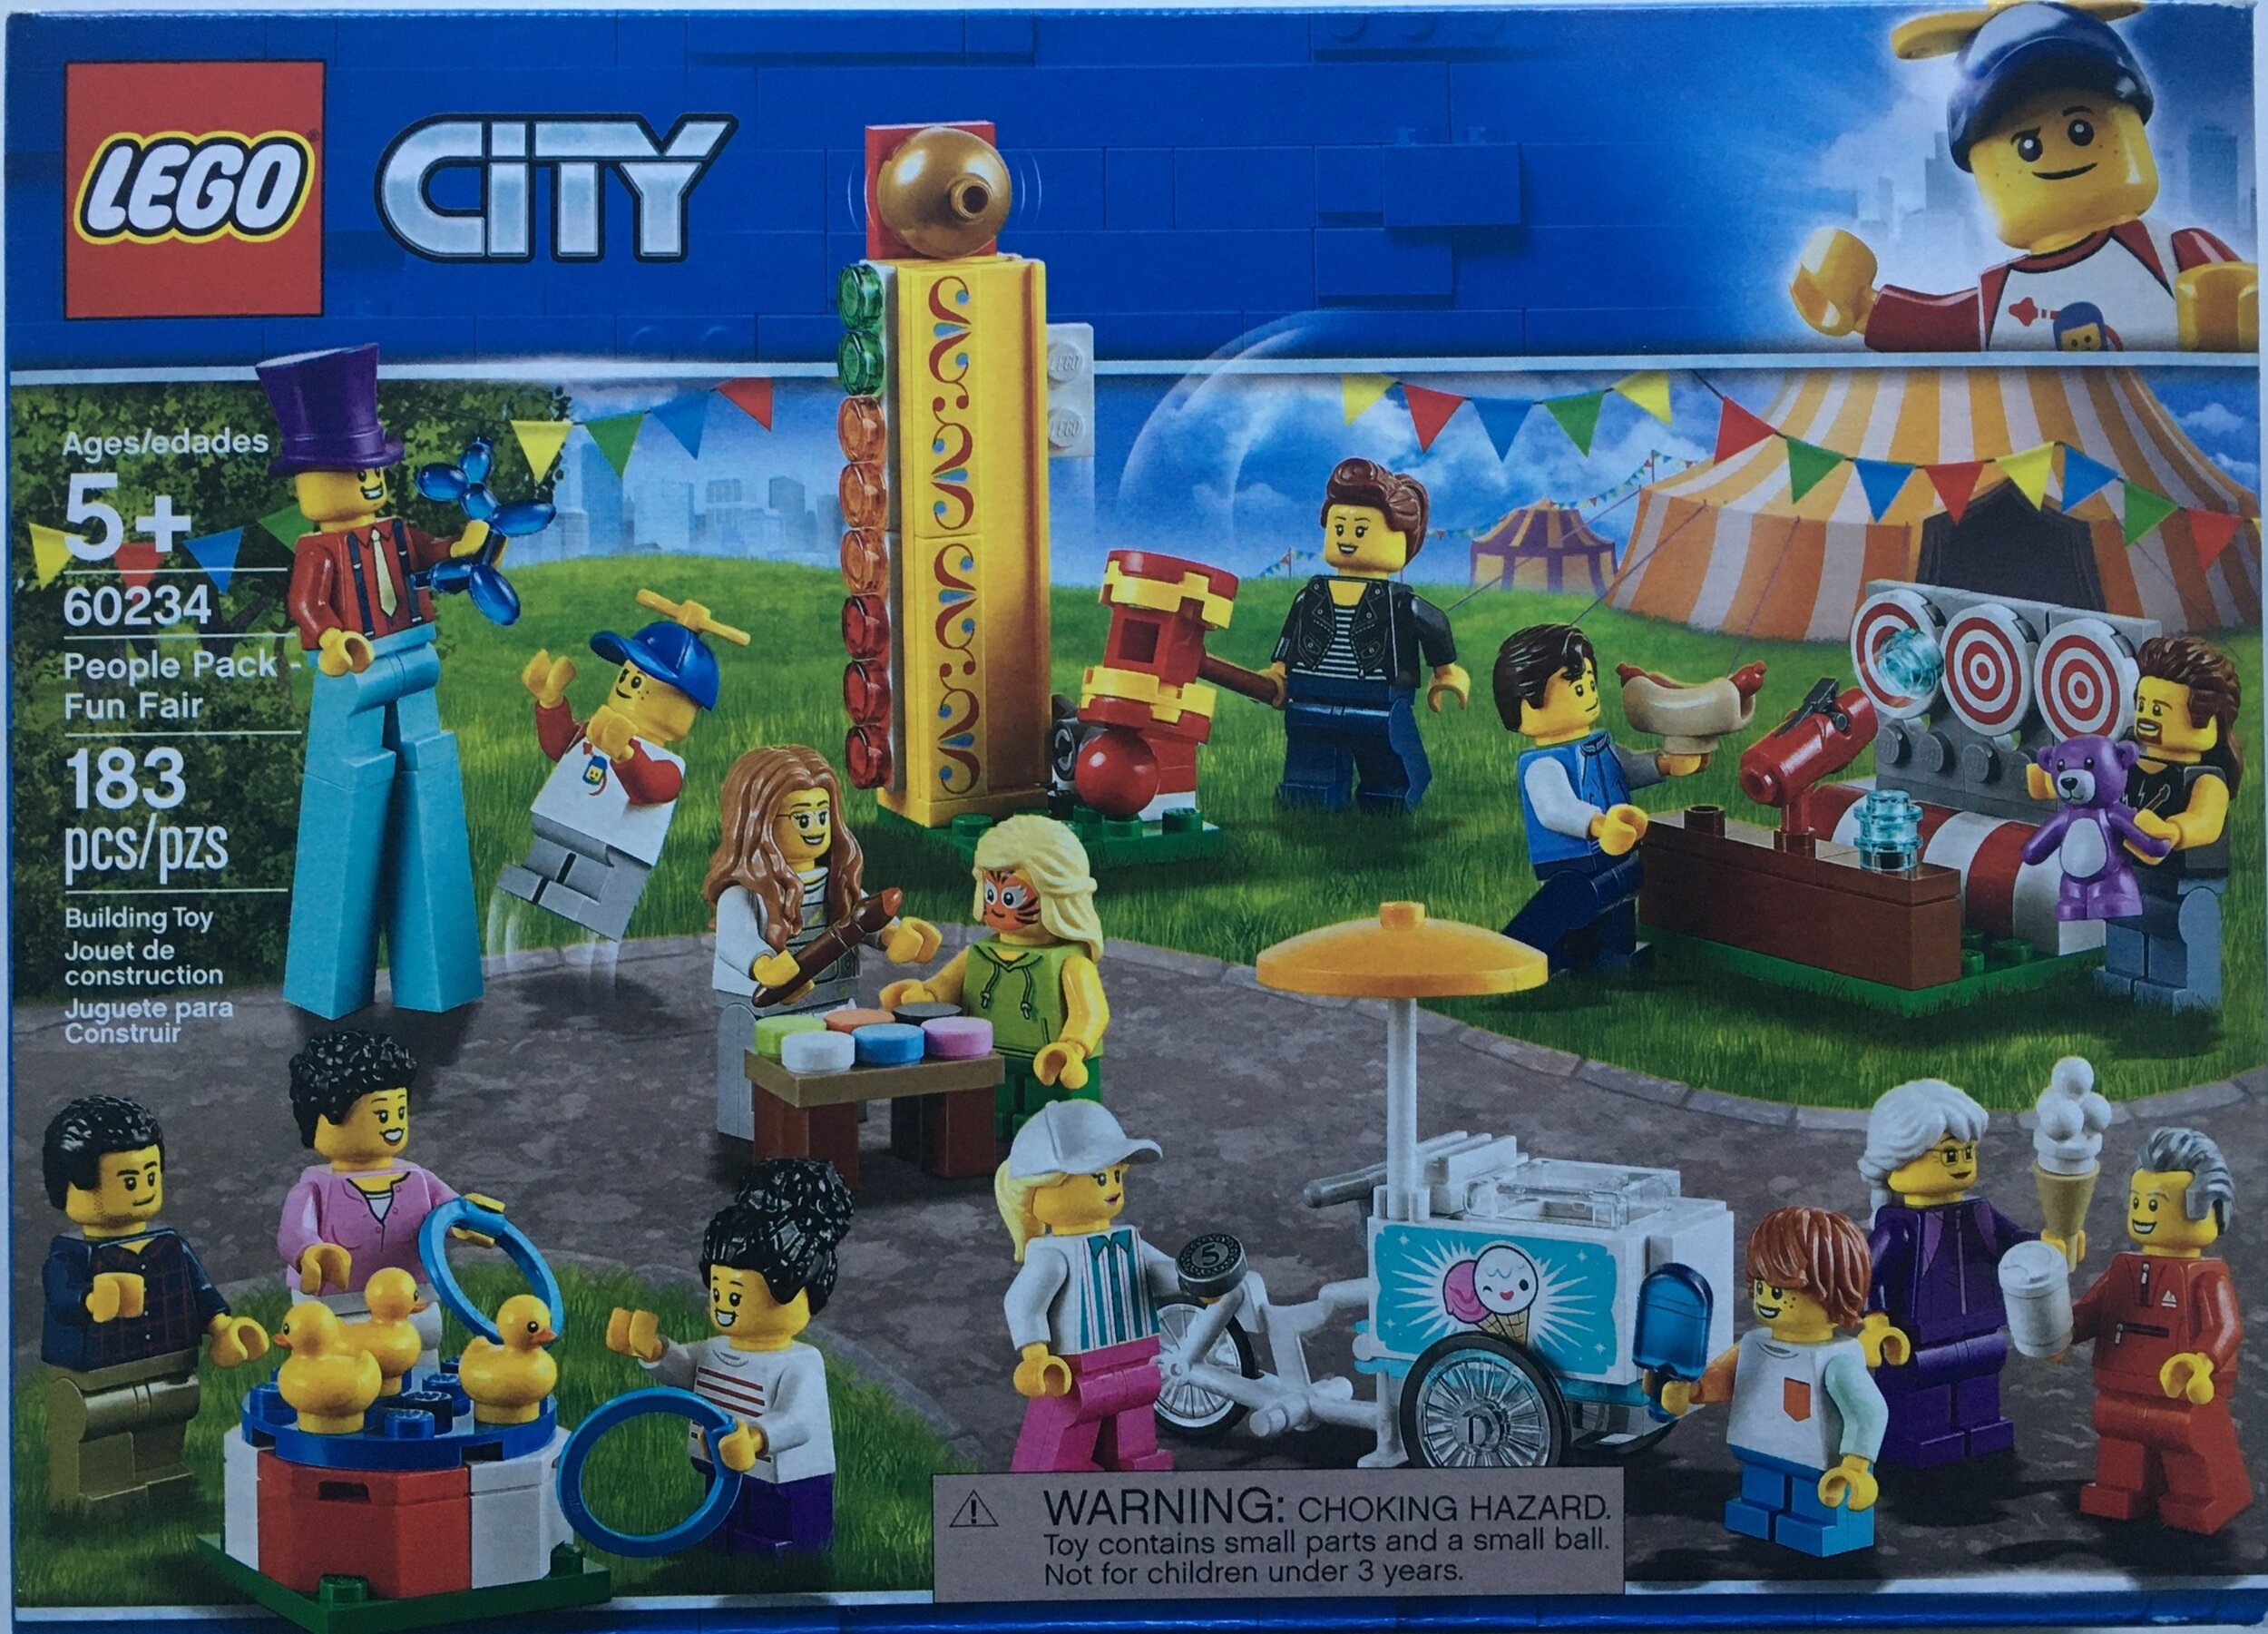 Lego 60234 City people pack fun fair Grandmother With Purple Suit MiniFigure NEW